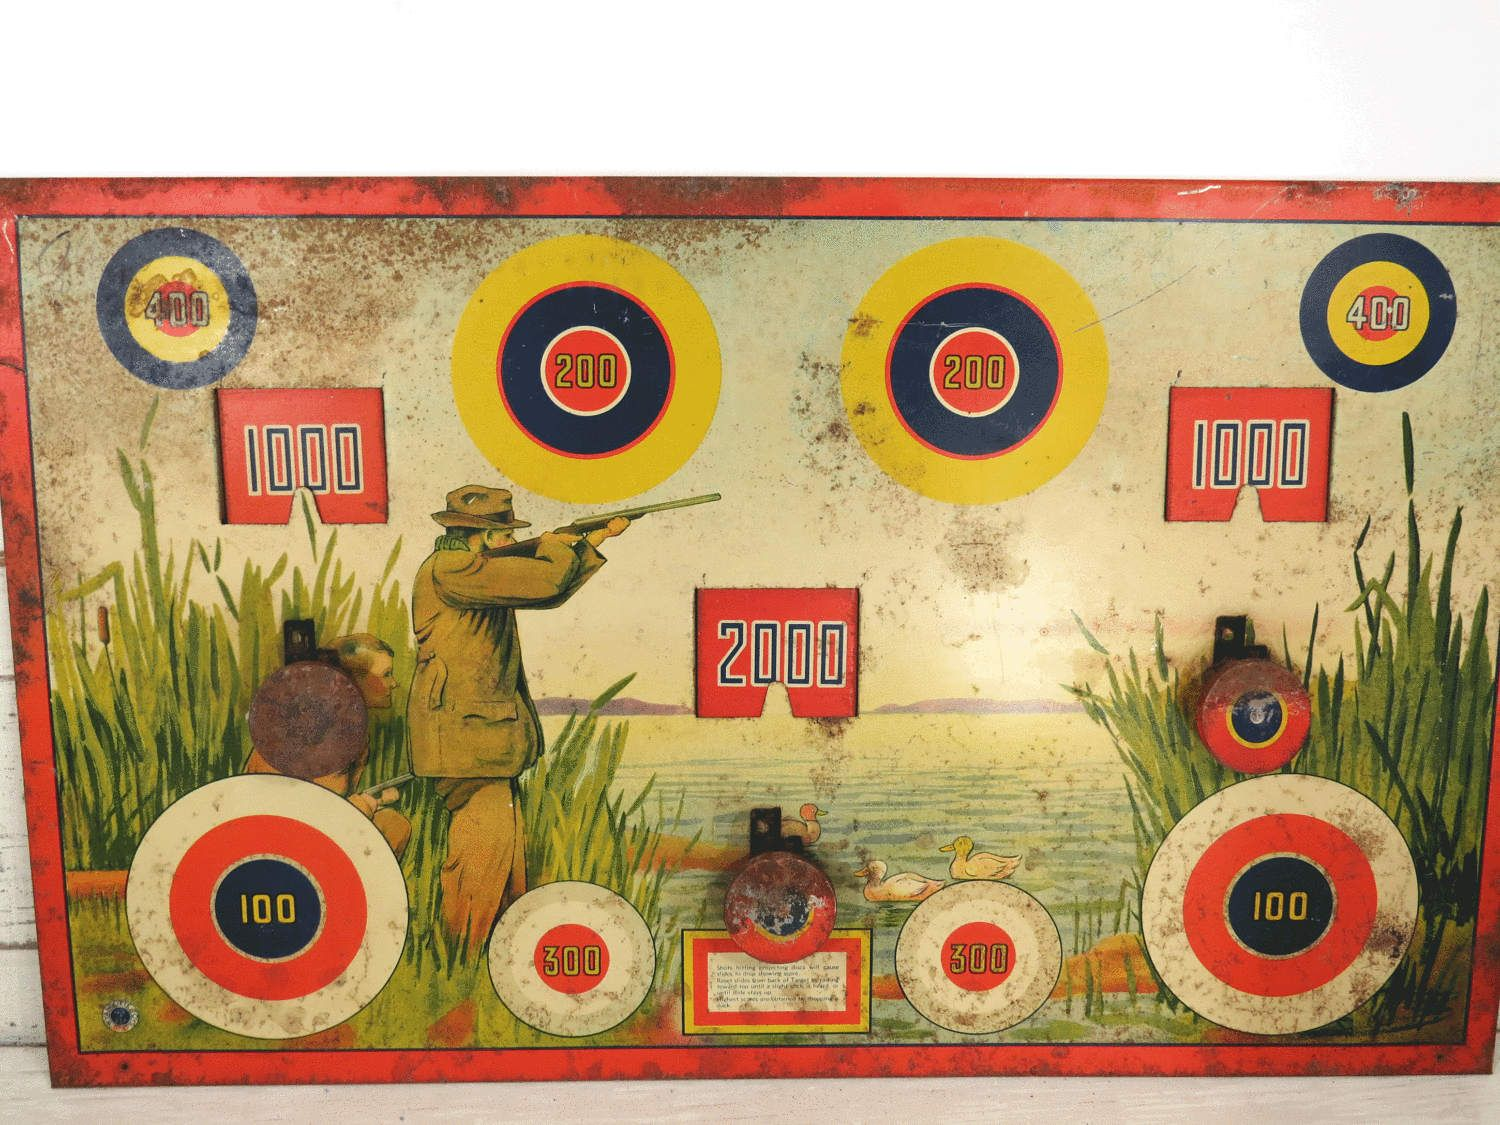 Man Cave Gifts Target : Vintage wyandotte duck hunting tin litho shooting dart target game